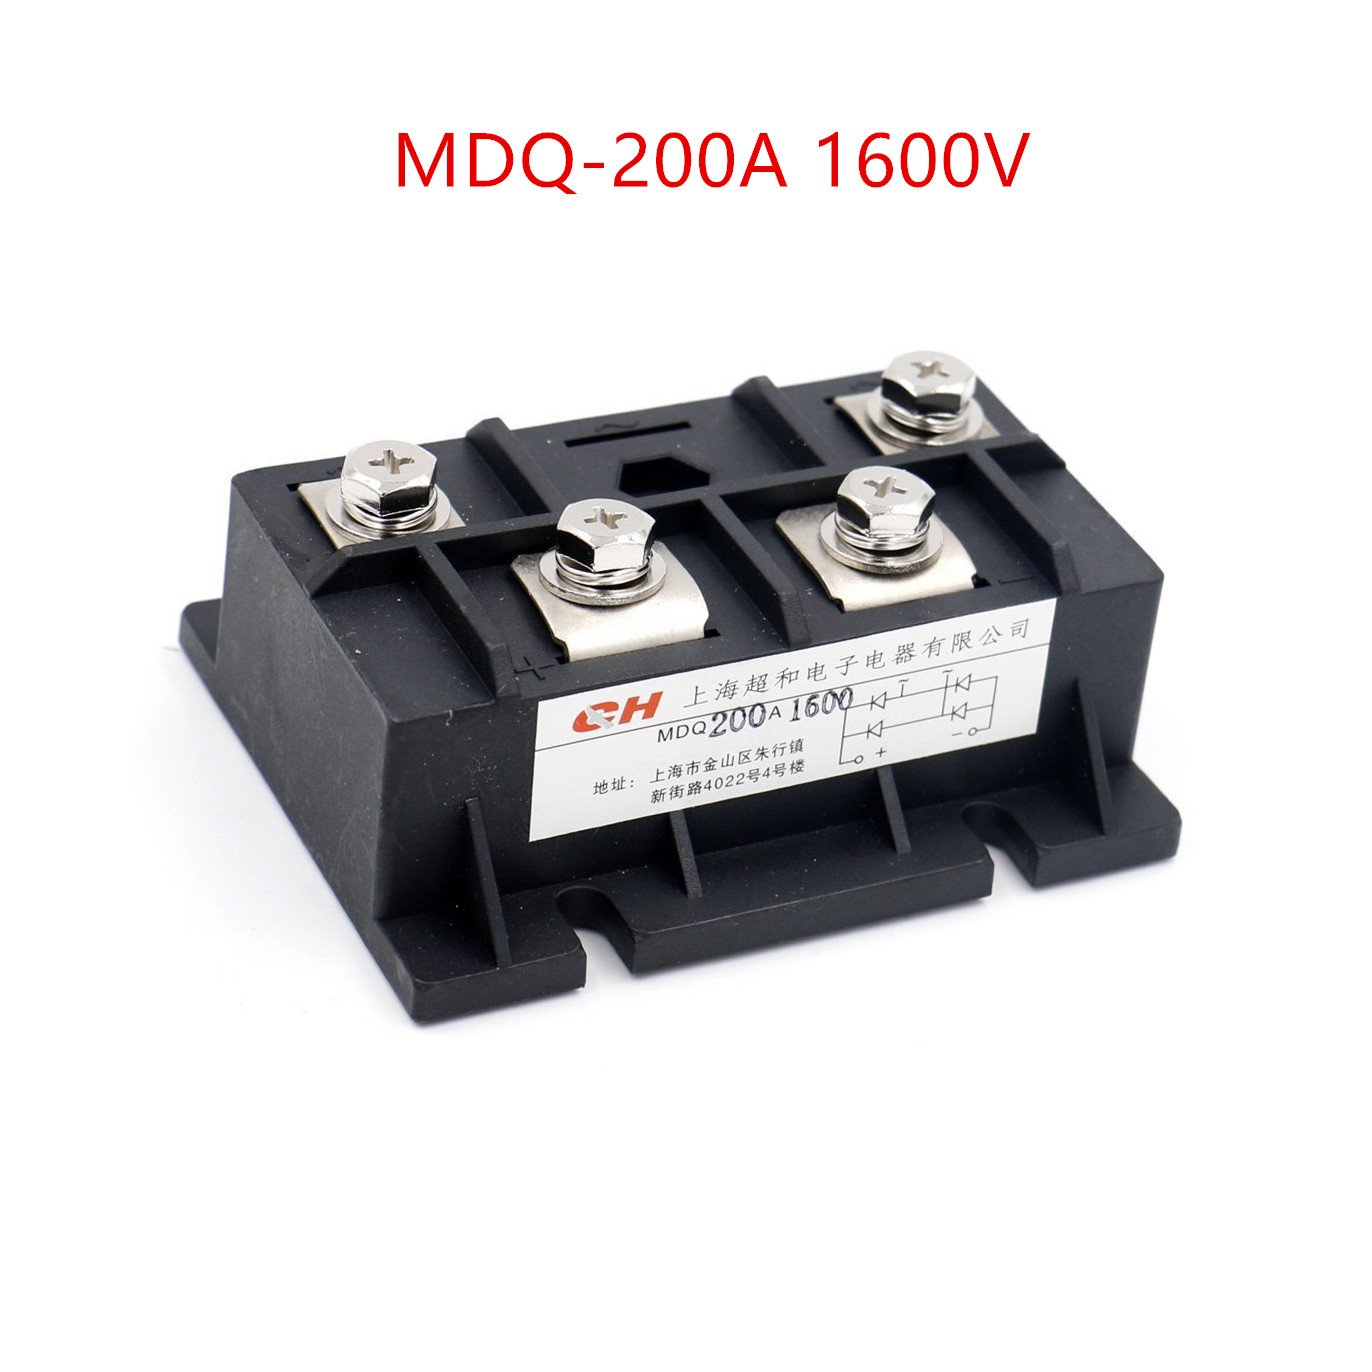 Nxtop Bridge Rectifier MDQ-200A 200A 1600V Full Wave Diode Module Single Phase